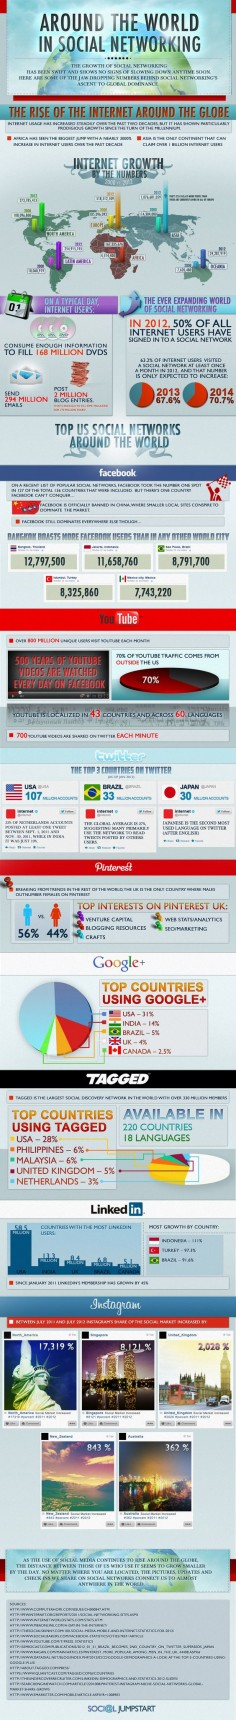 How People Around the World Use Social Media